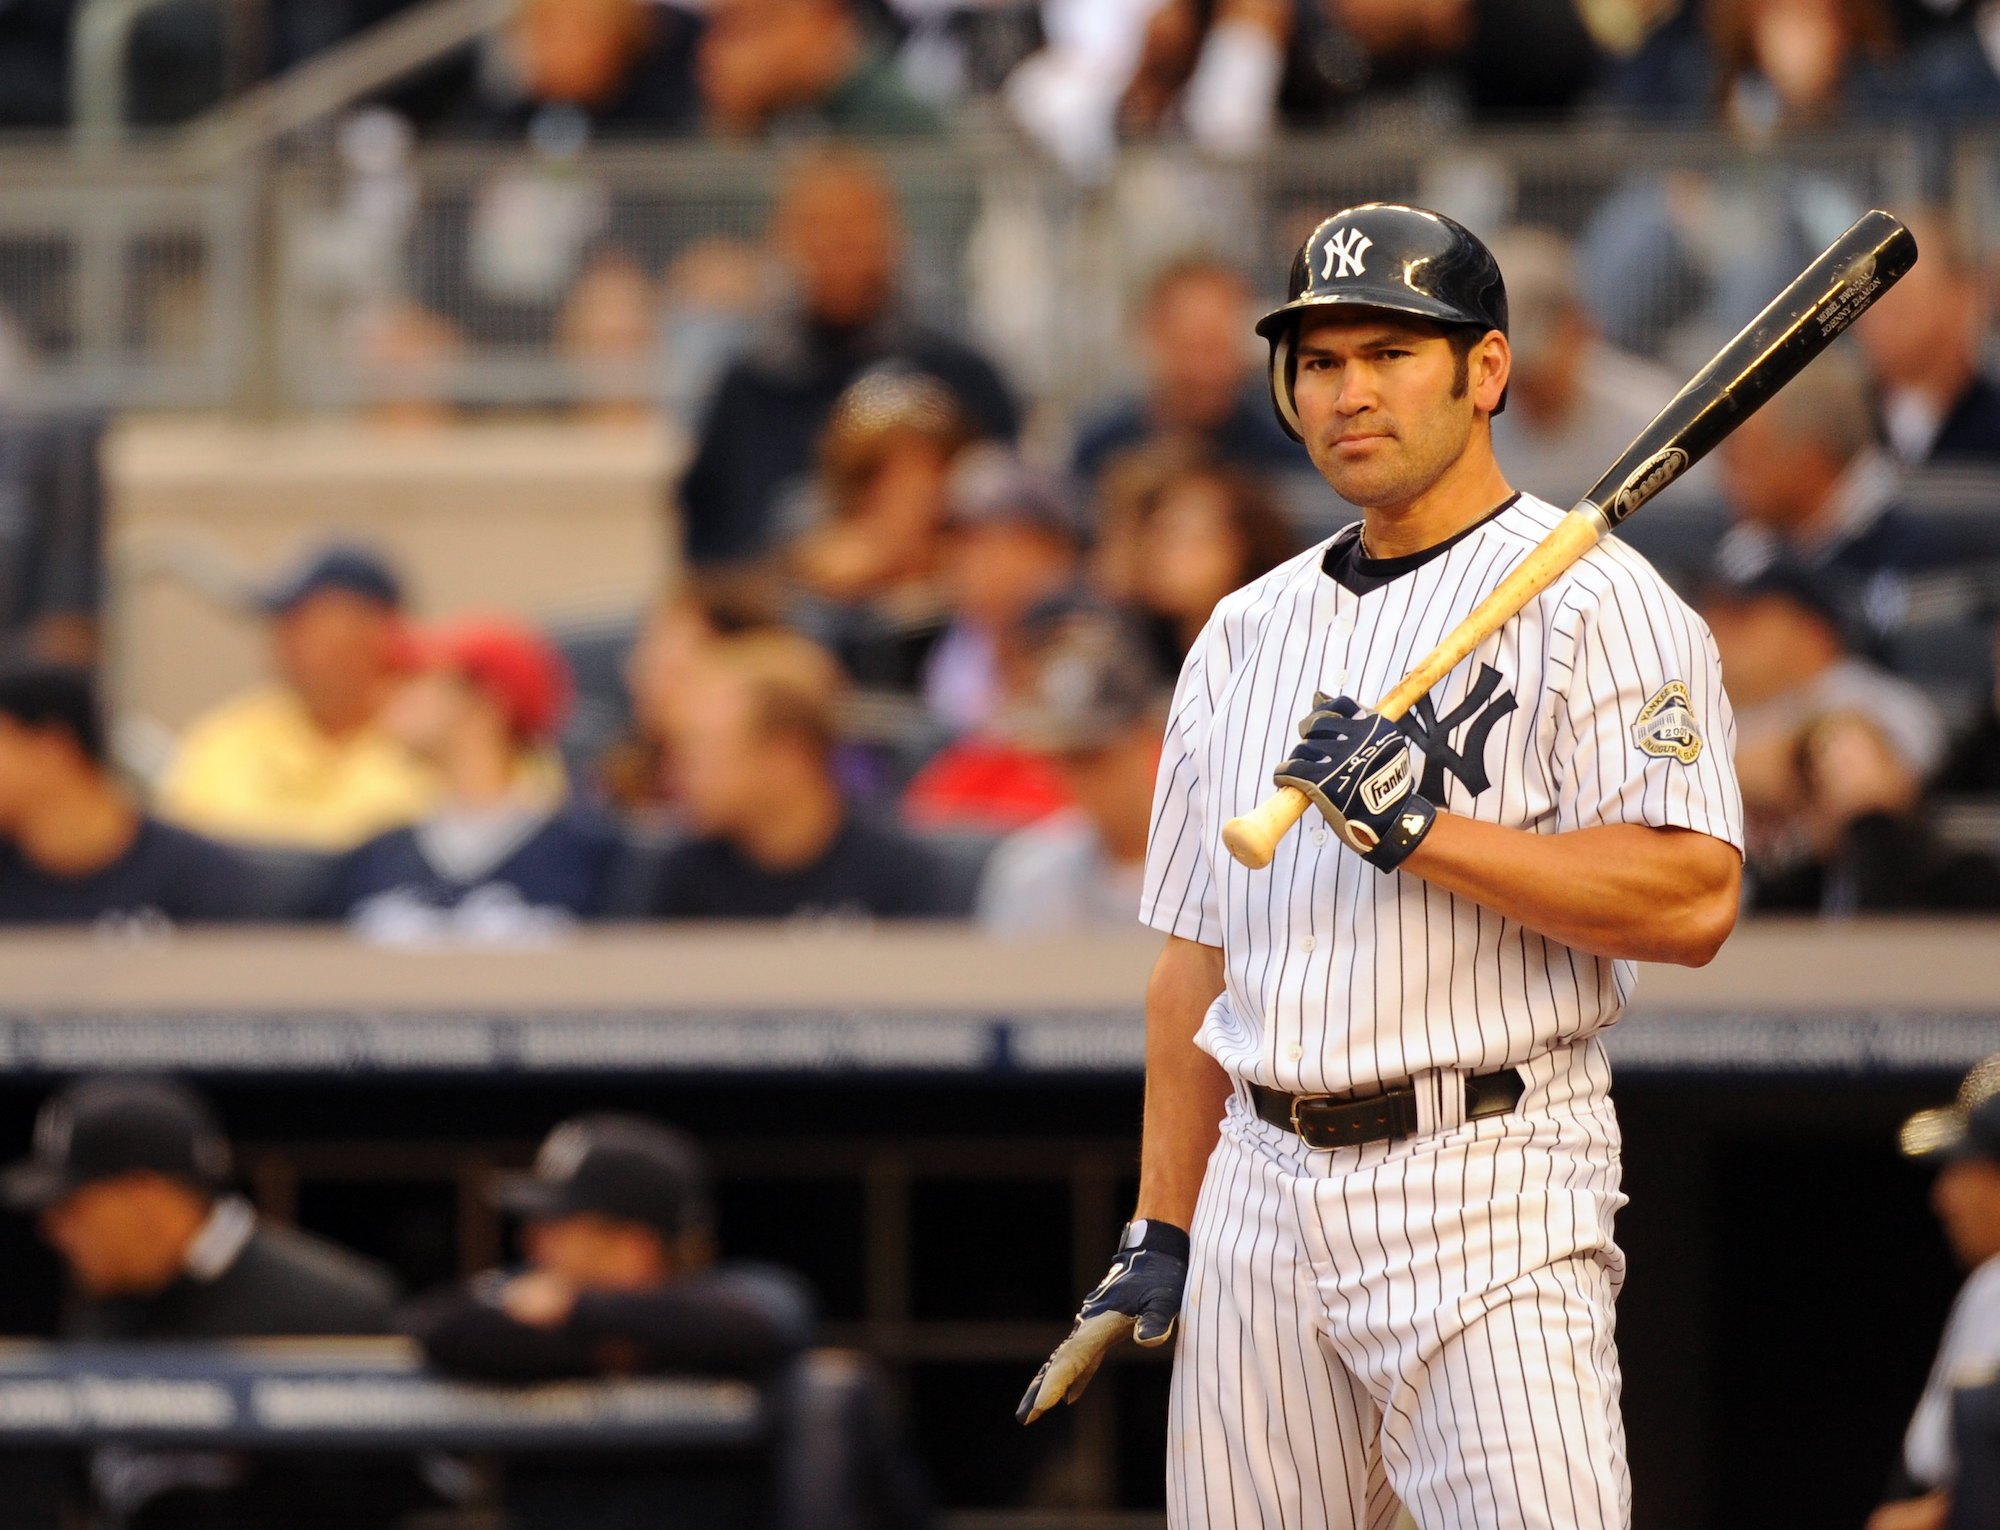 Johnny Damon's latest comments won't win him any favors with Boston Red Sox fans.